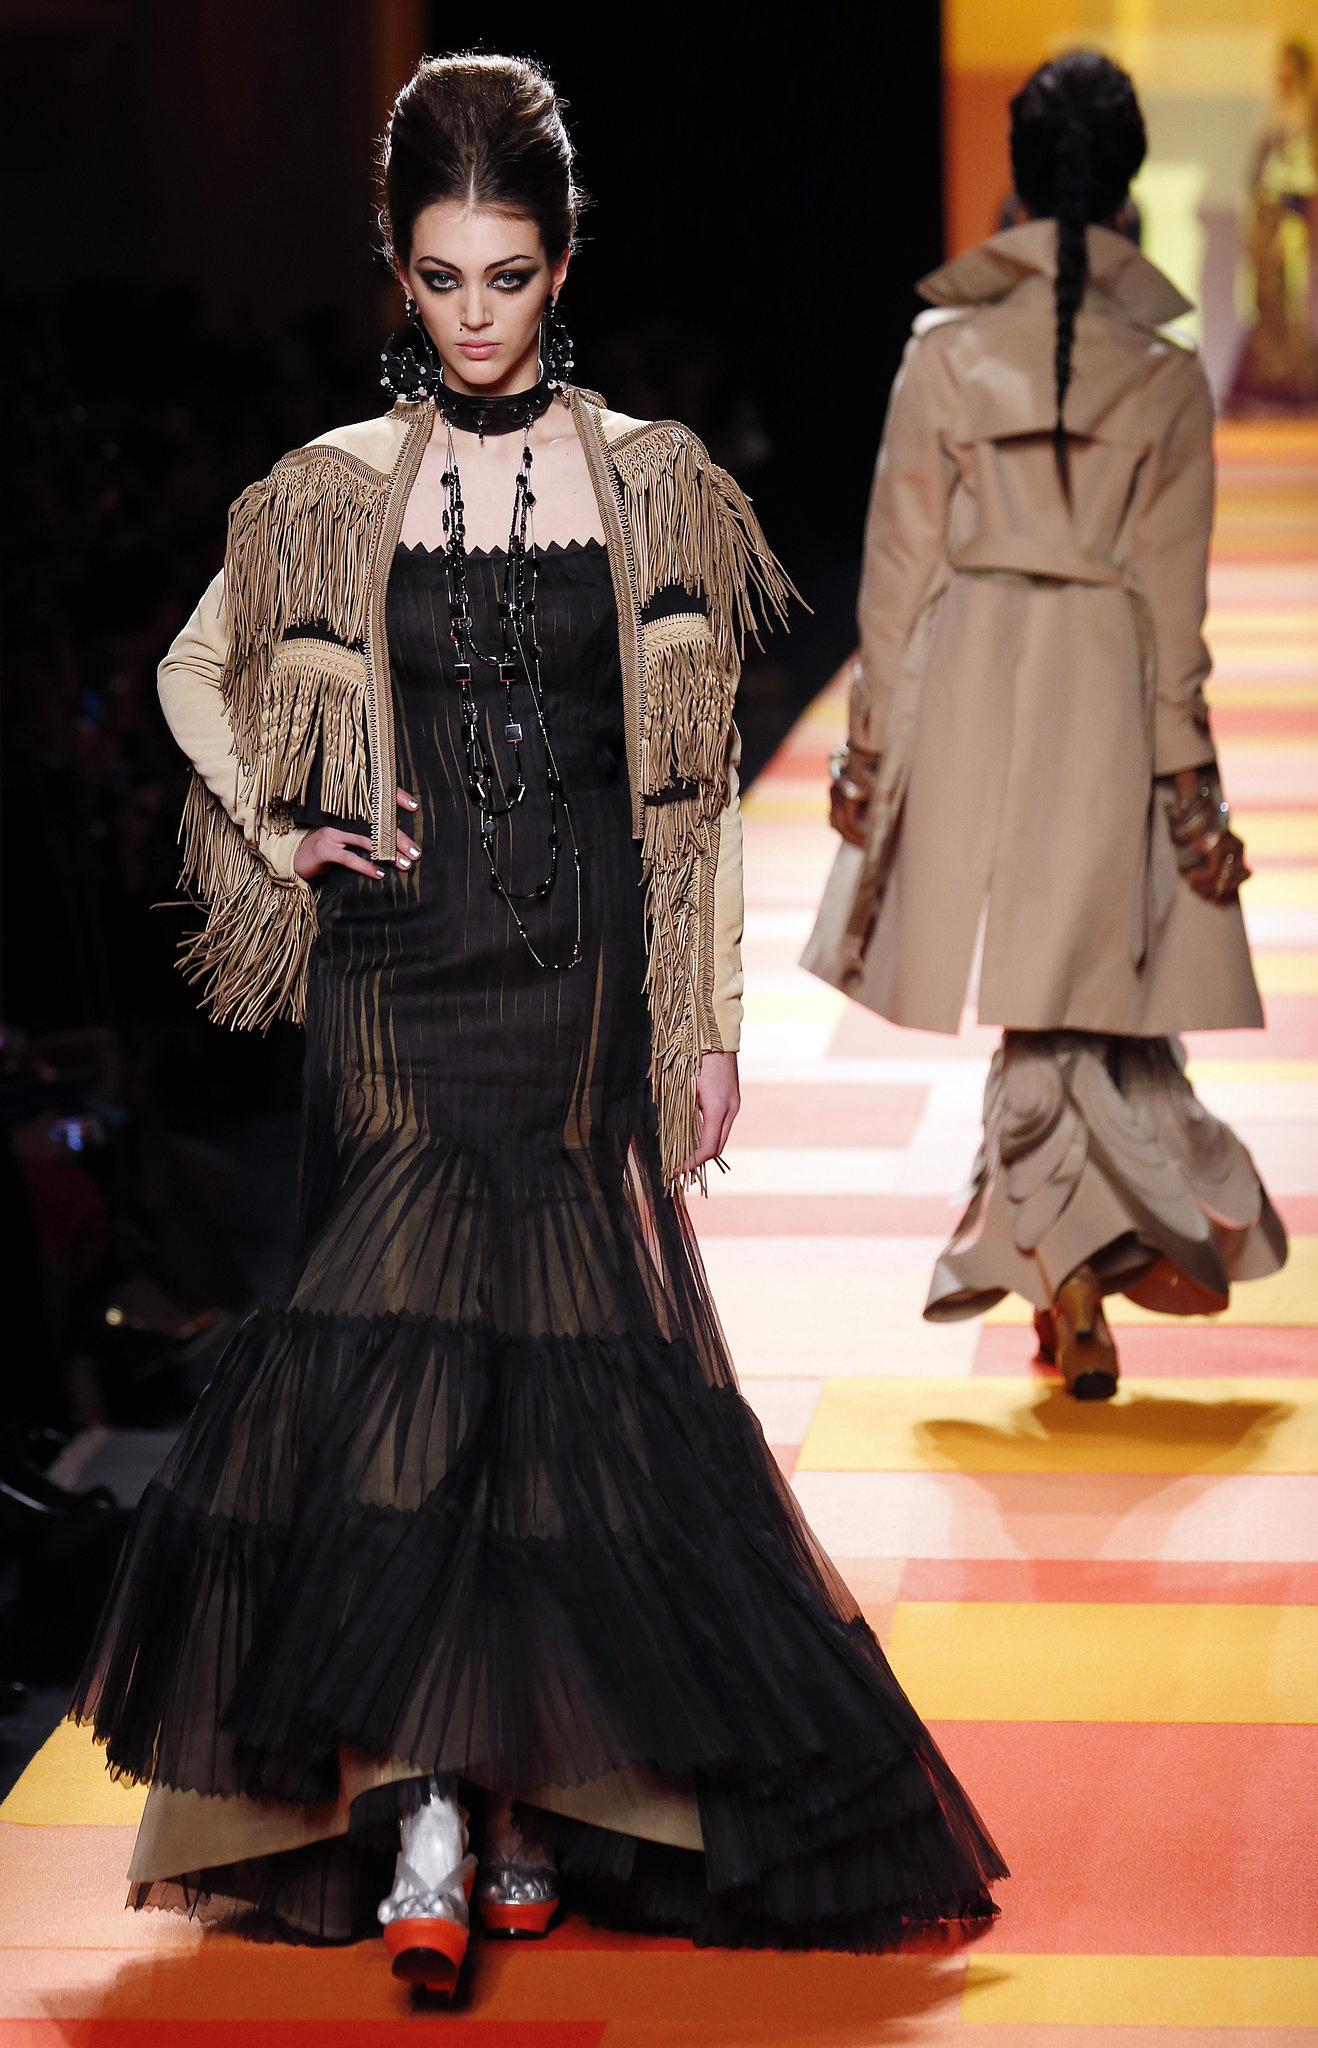 Pleating at Jean Paul Gaultier